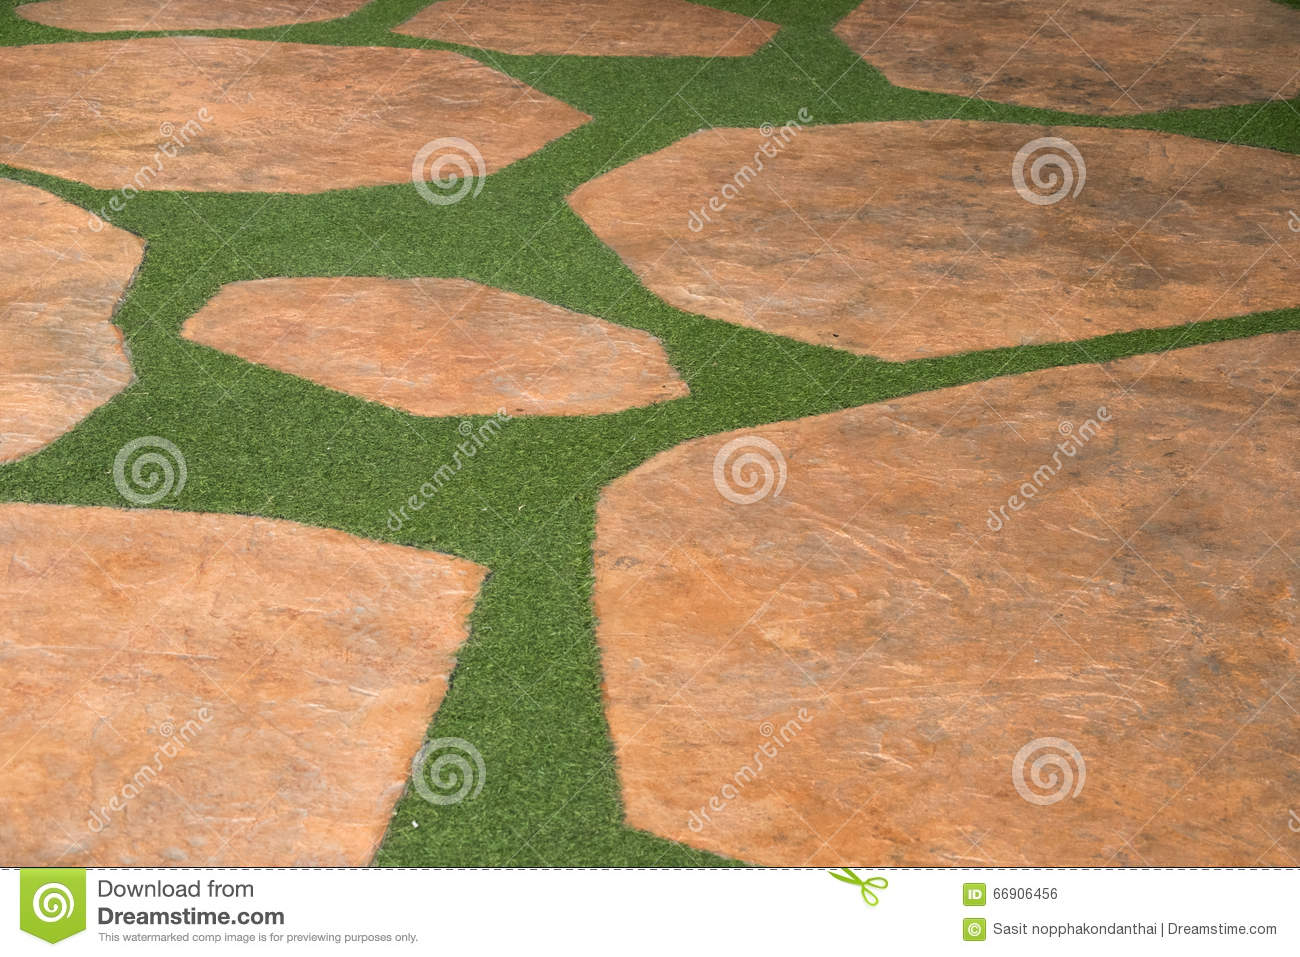 Brown stone and artificial turf grass pathway